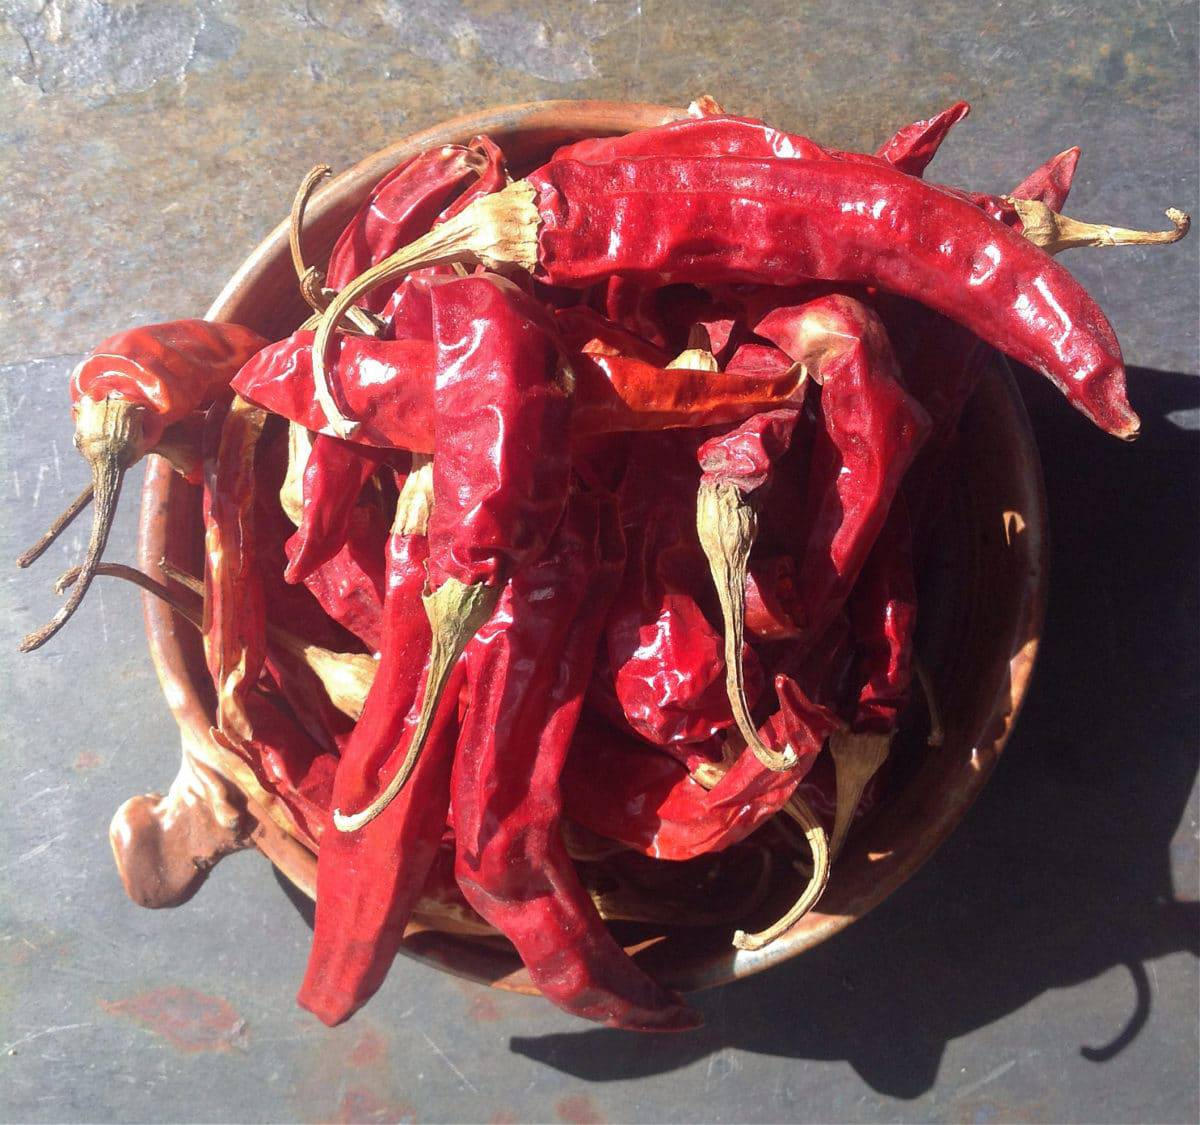 dried red ristra peppers in a bowl